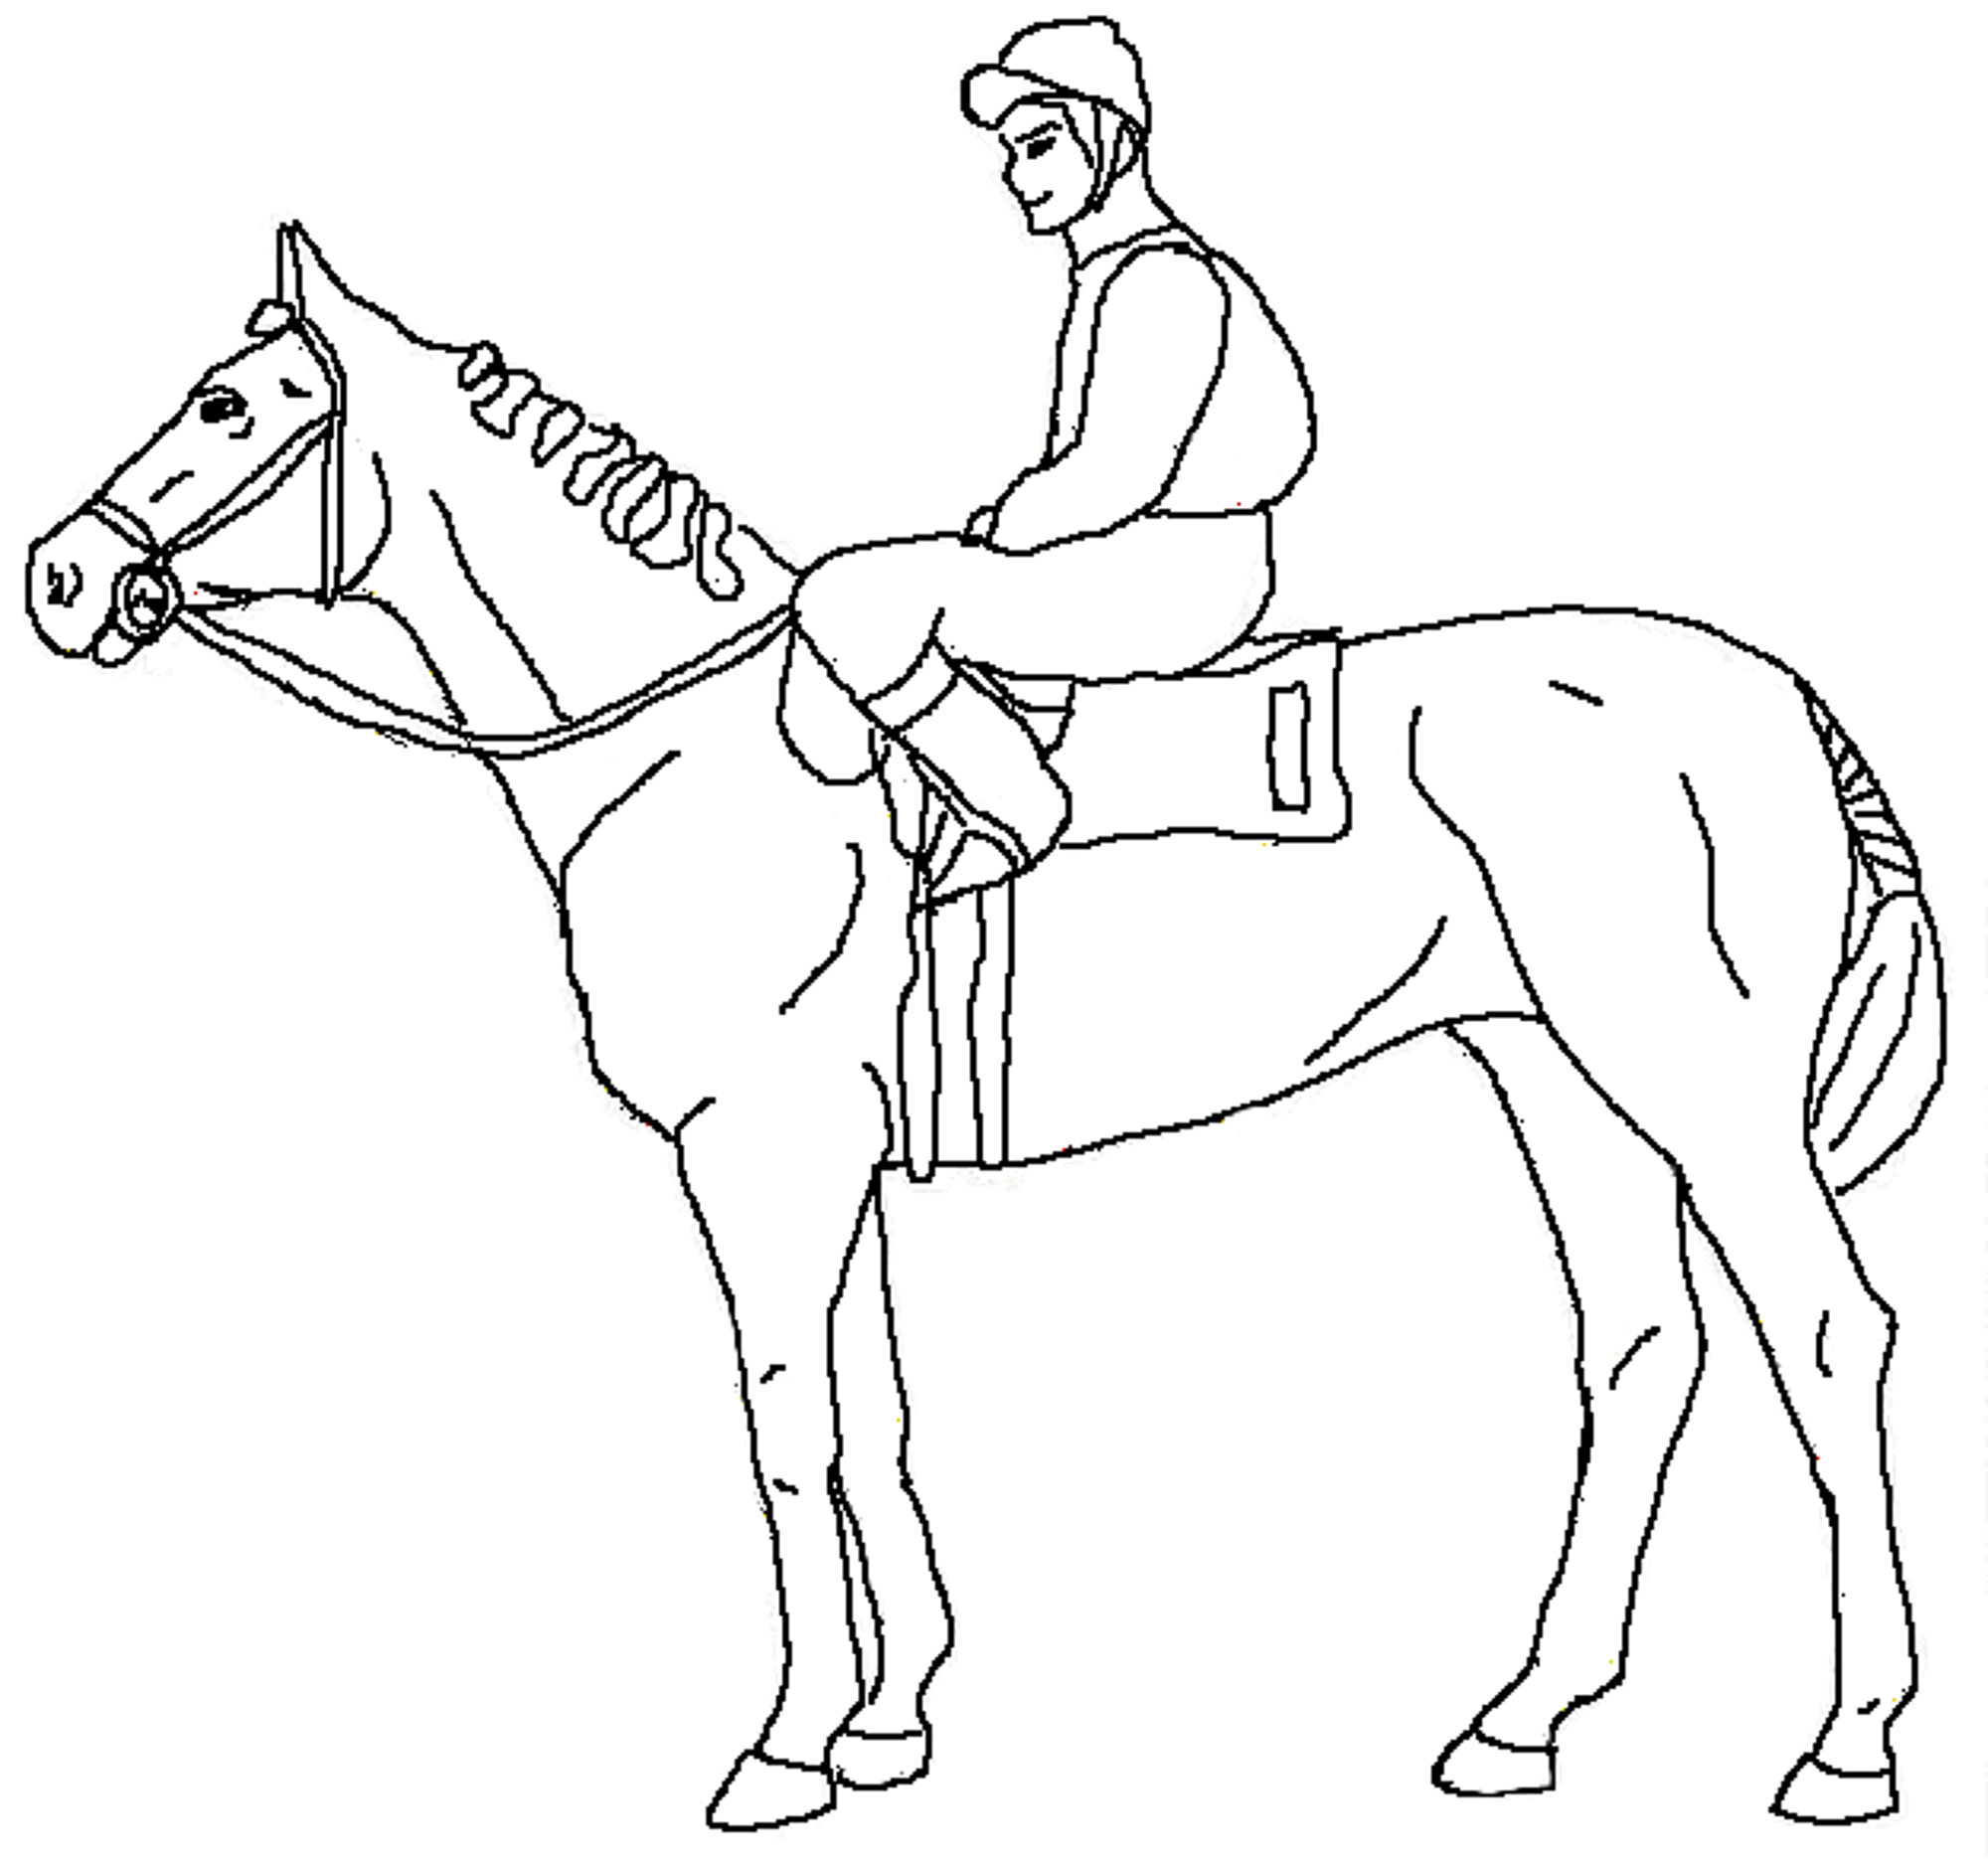 coloring page of horse 9 horse coloring pages free pdf document download coloring page horse of